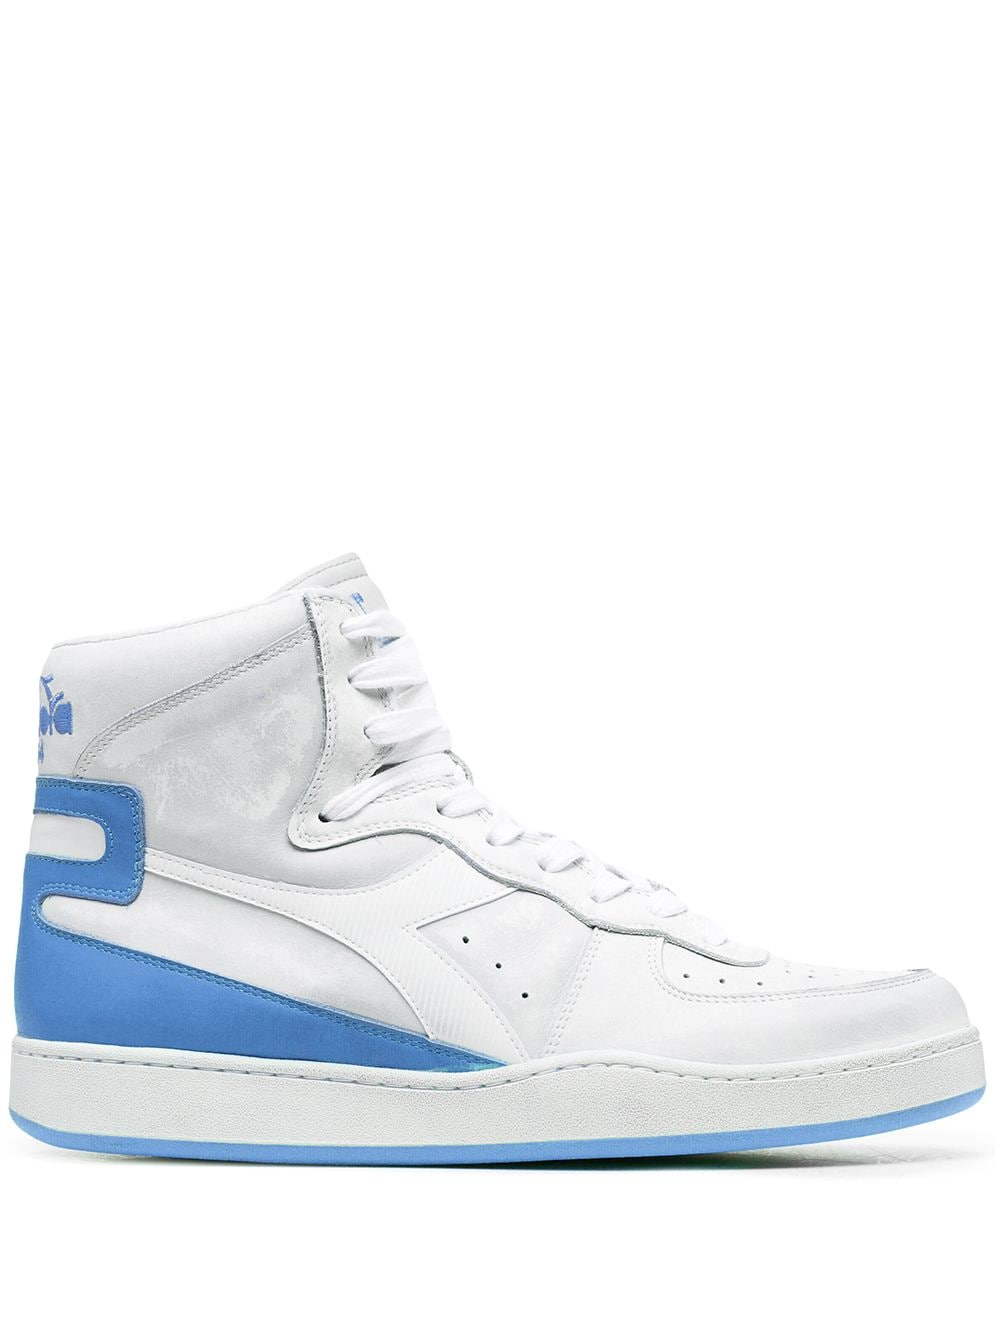 HIGH-TOP SNEAKERS DIADORA | Sneakers | 201.158569C4478